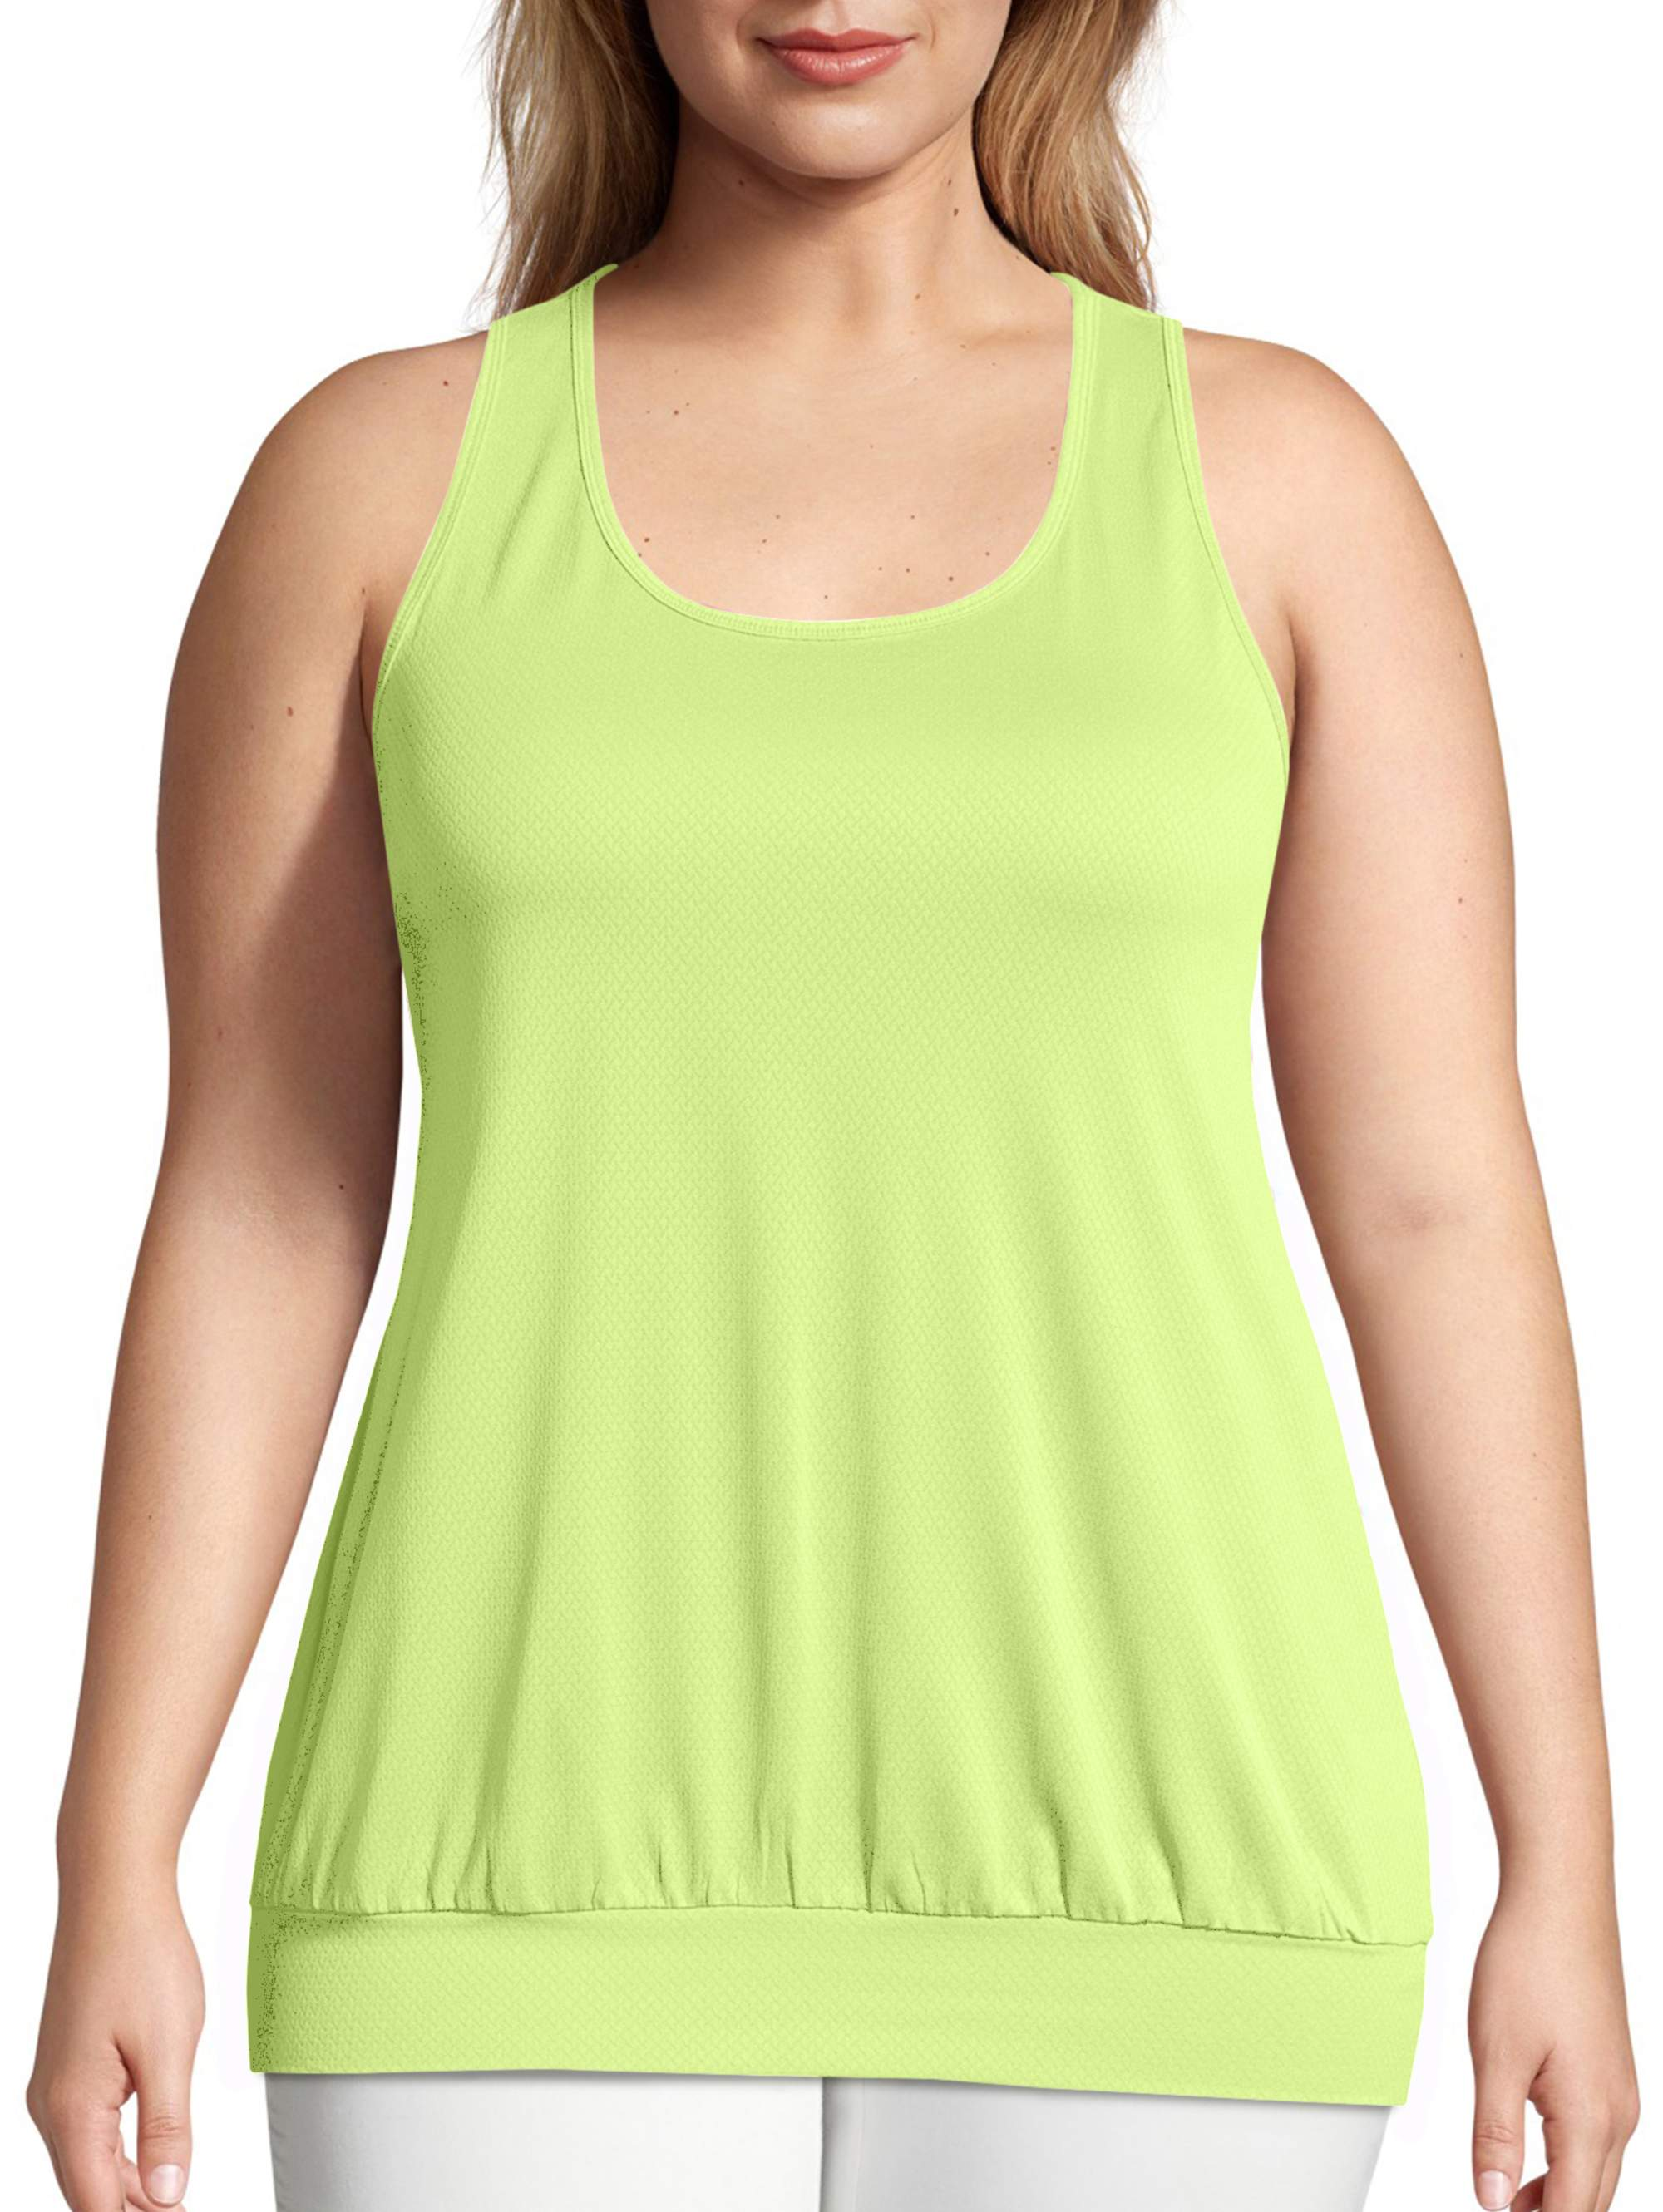 JUST MY SIZE Womens Plus Size Active Mesh Banded Tank